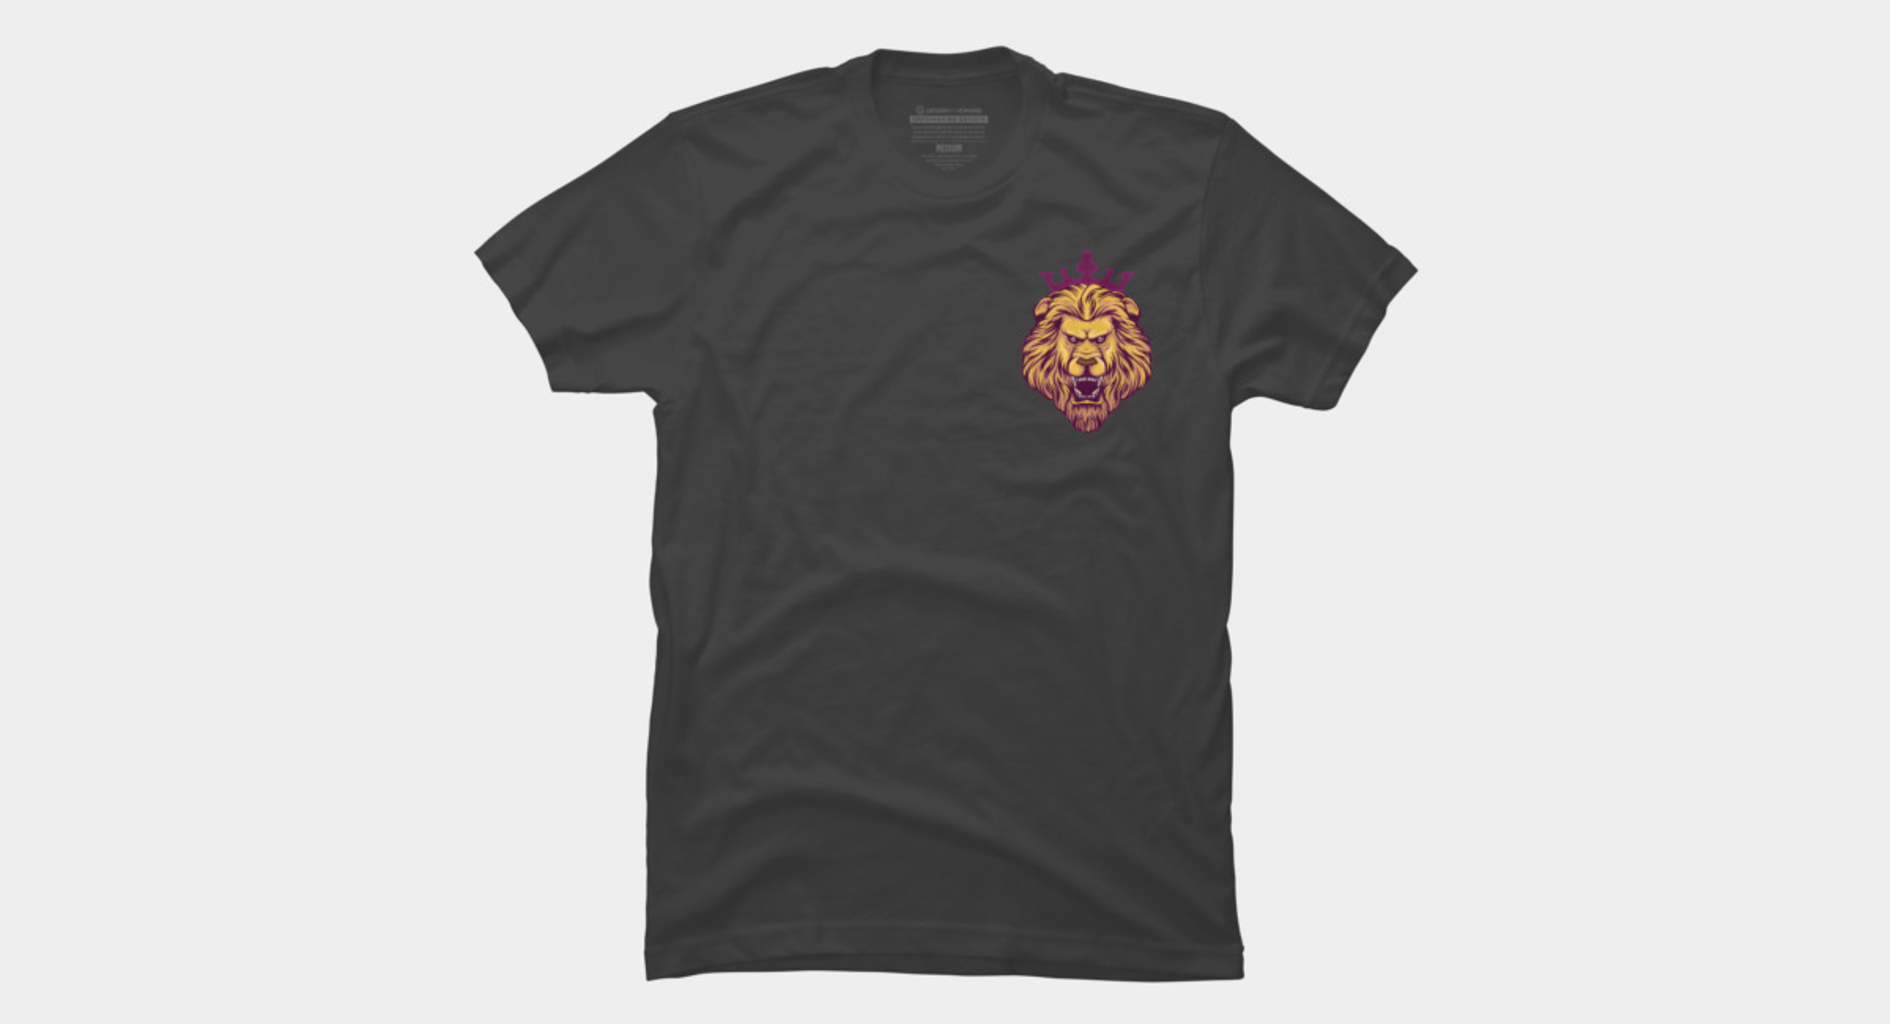 Design by Humans: RoyalTEEs